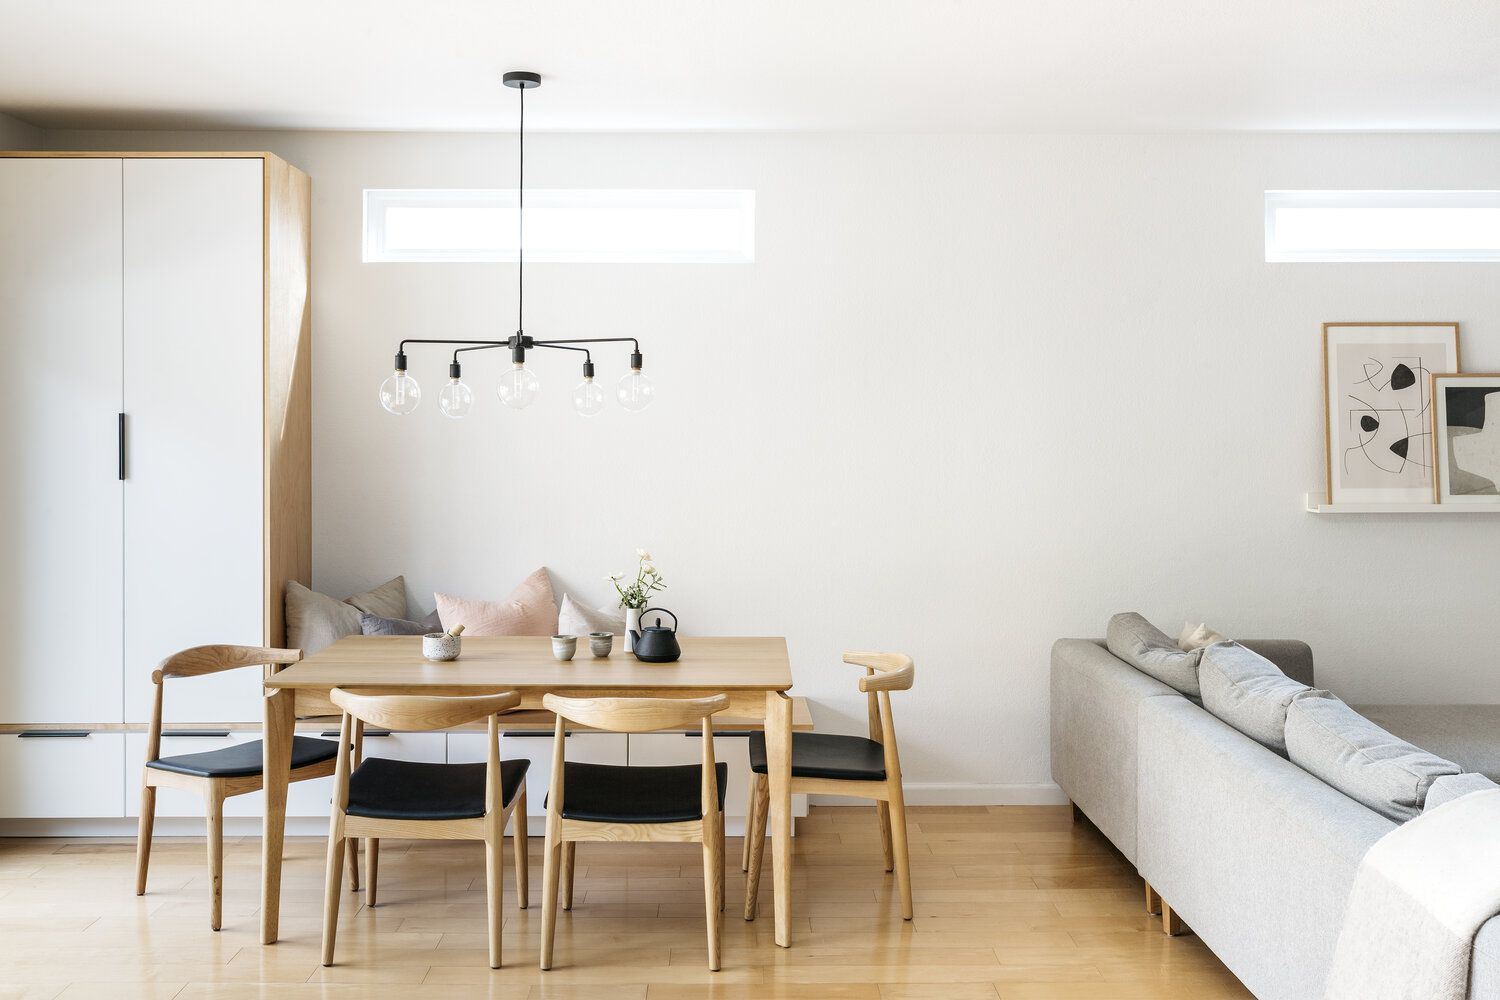 A sleek dining room table adorned with several small objects